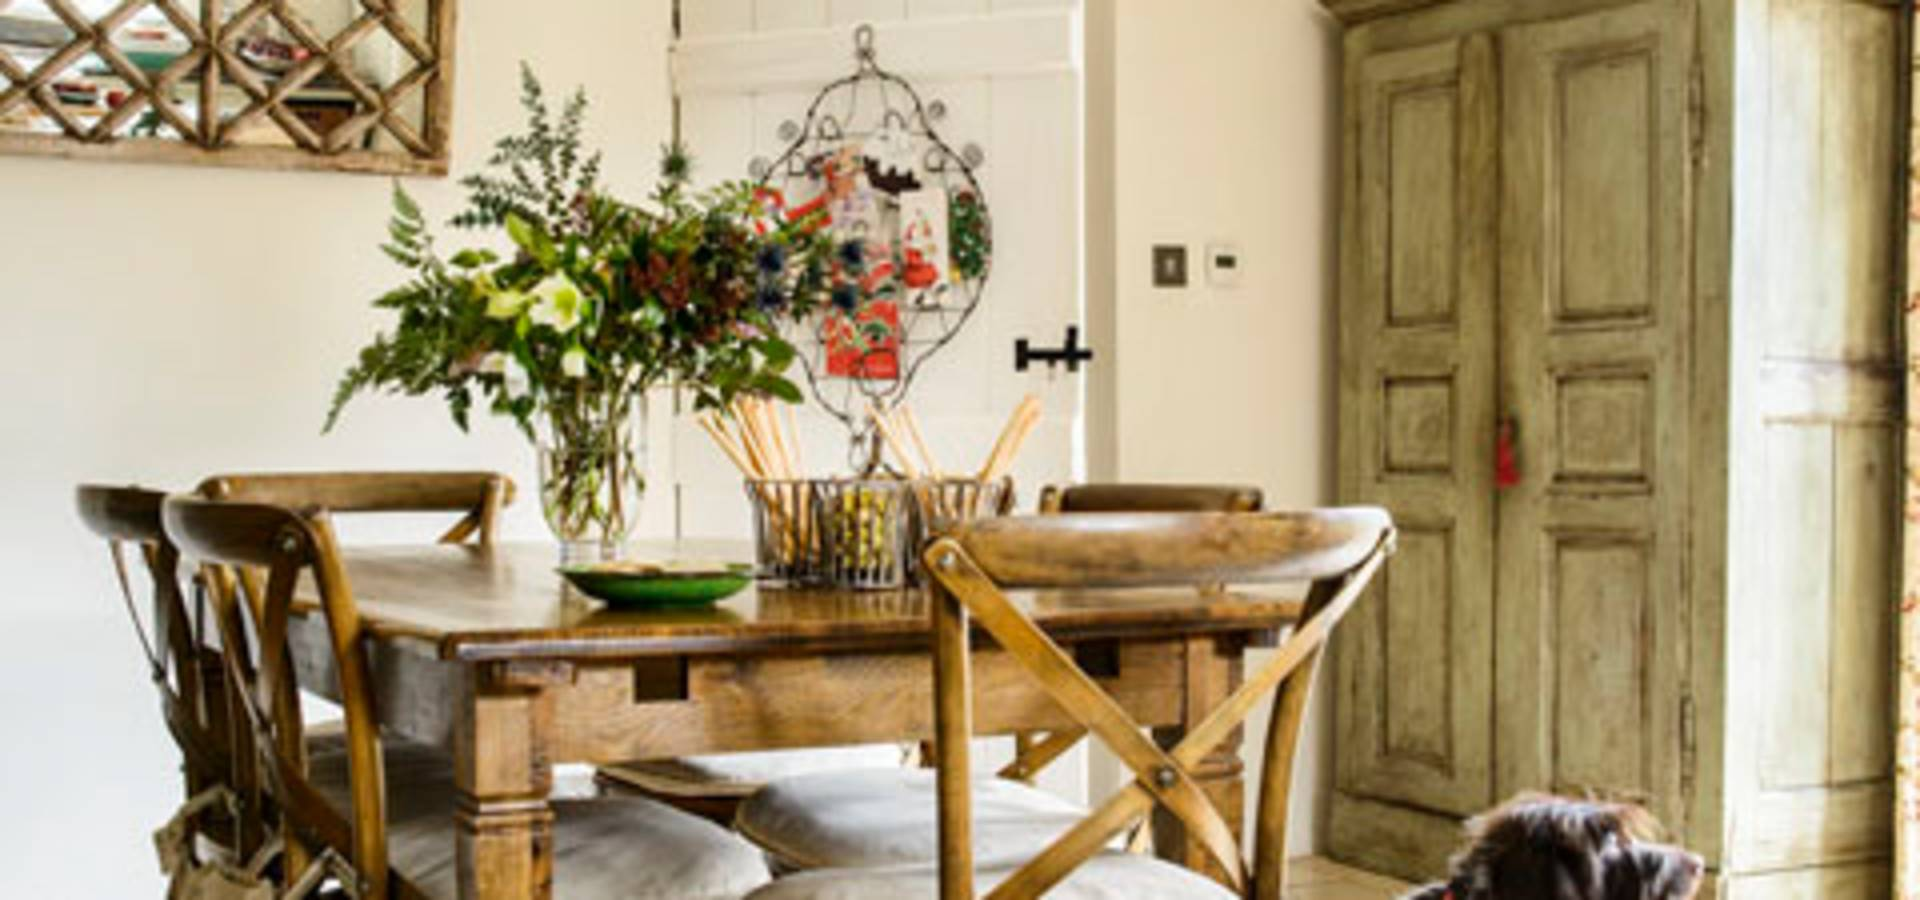 Interiors and styling interieurontwerpers in newton abbot homify